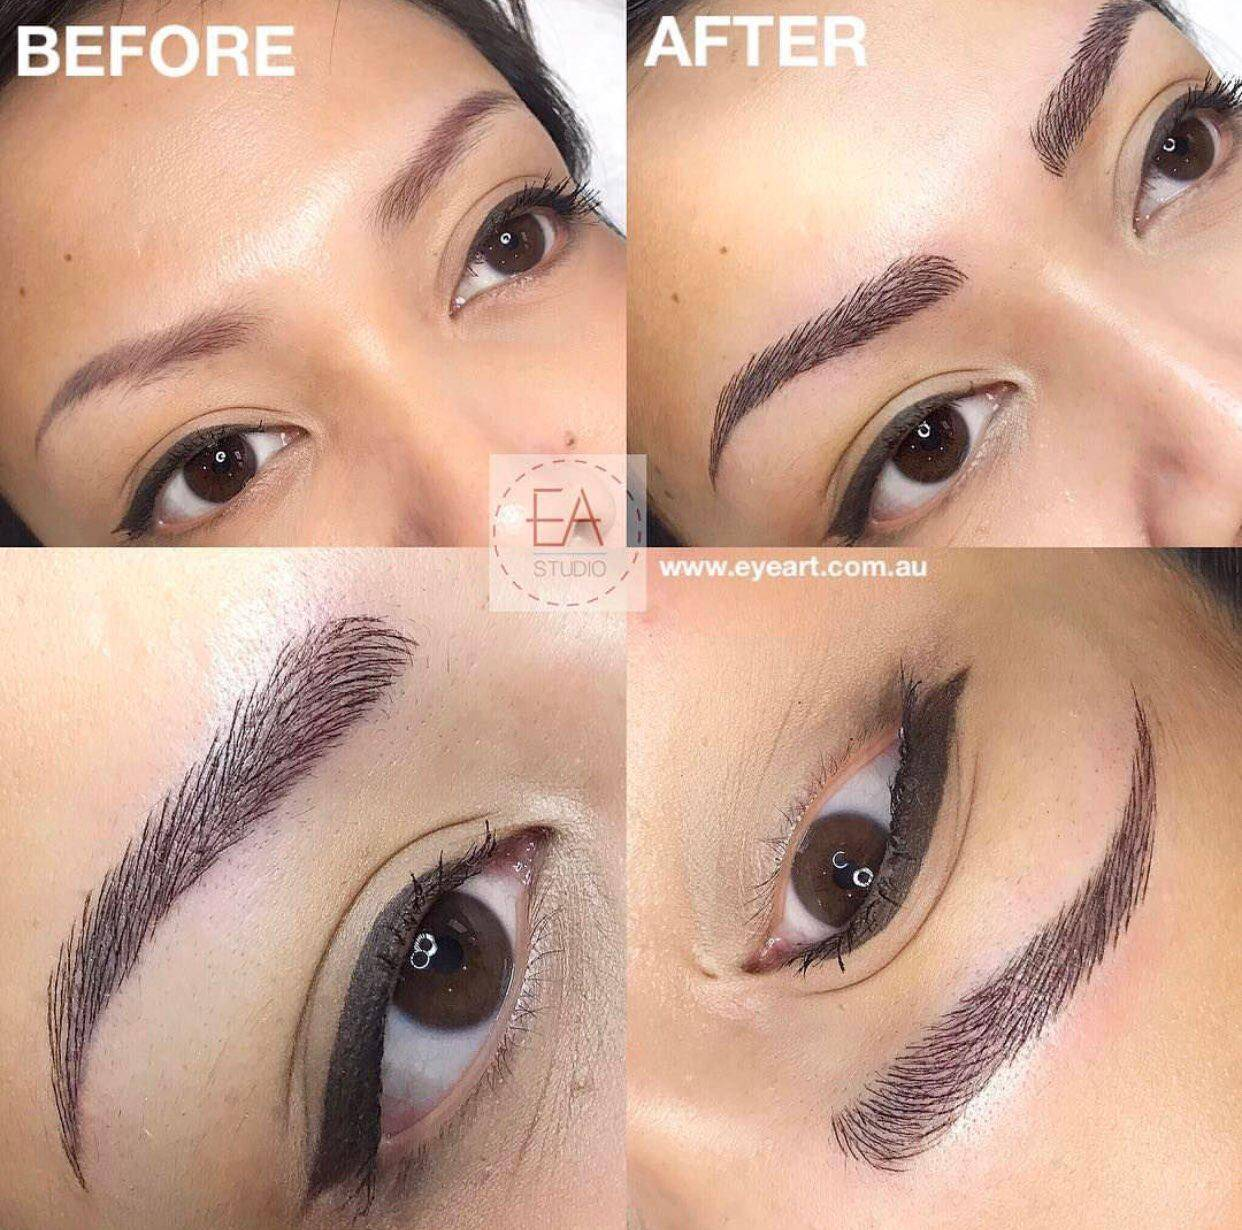 Best Eyebrow Microblading Feathering Salons for Asians Eyebrow Tattooing